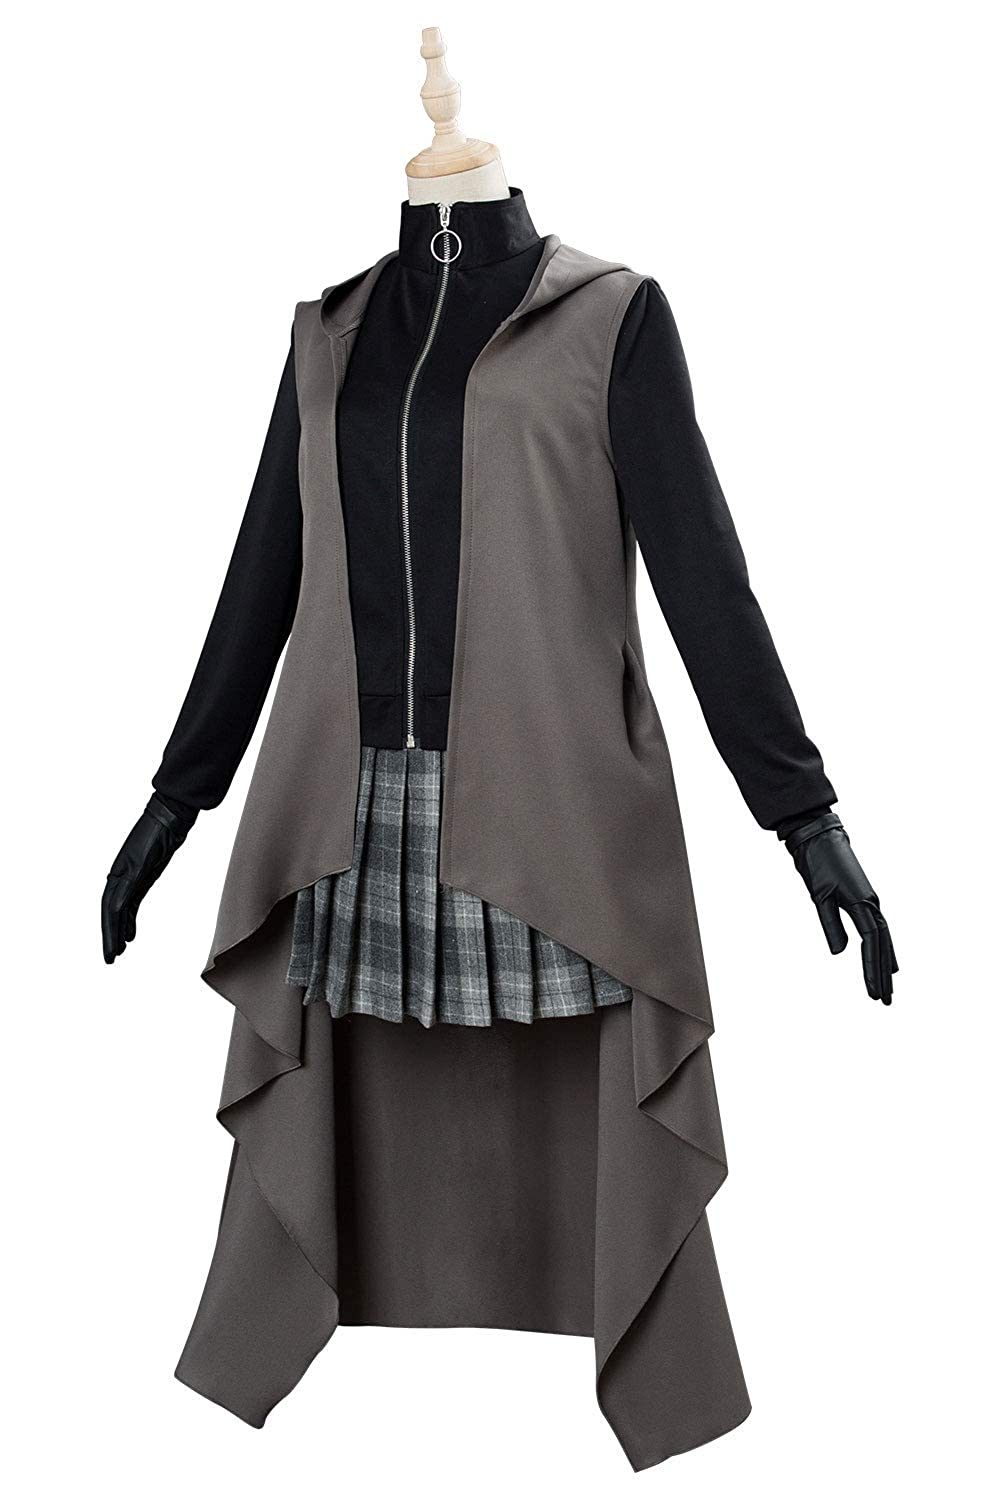 Costumes & Accessories The Case Files Of Lord El-melloi Ii Gray Cosplay Costume Outfit Women Men Custom Made Halloween Party Cosplay Dress Reputation First